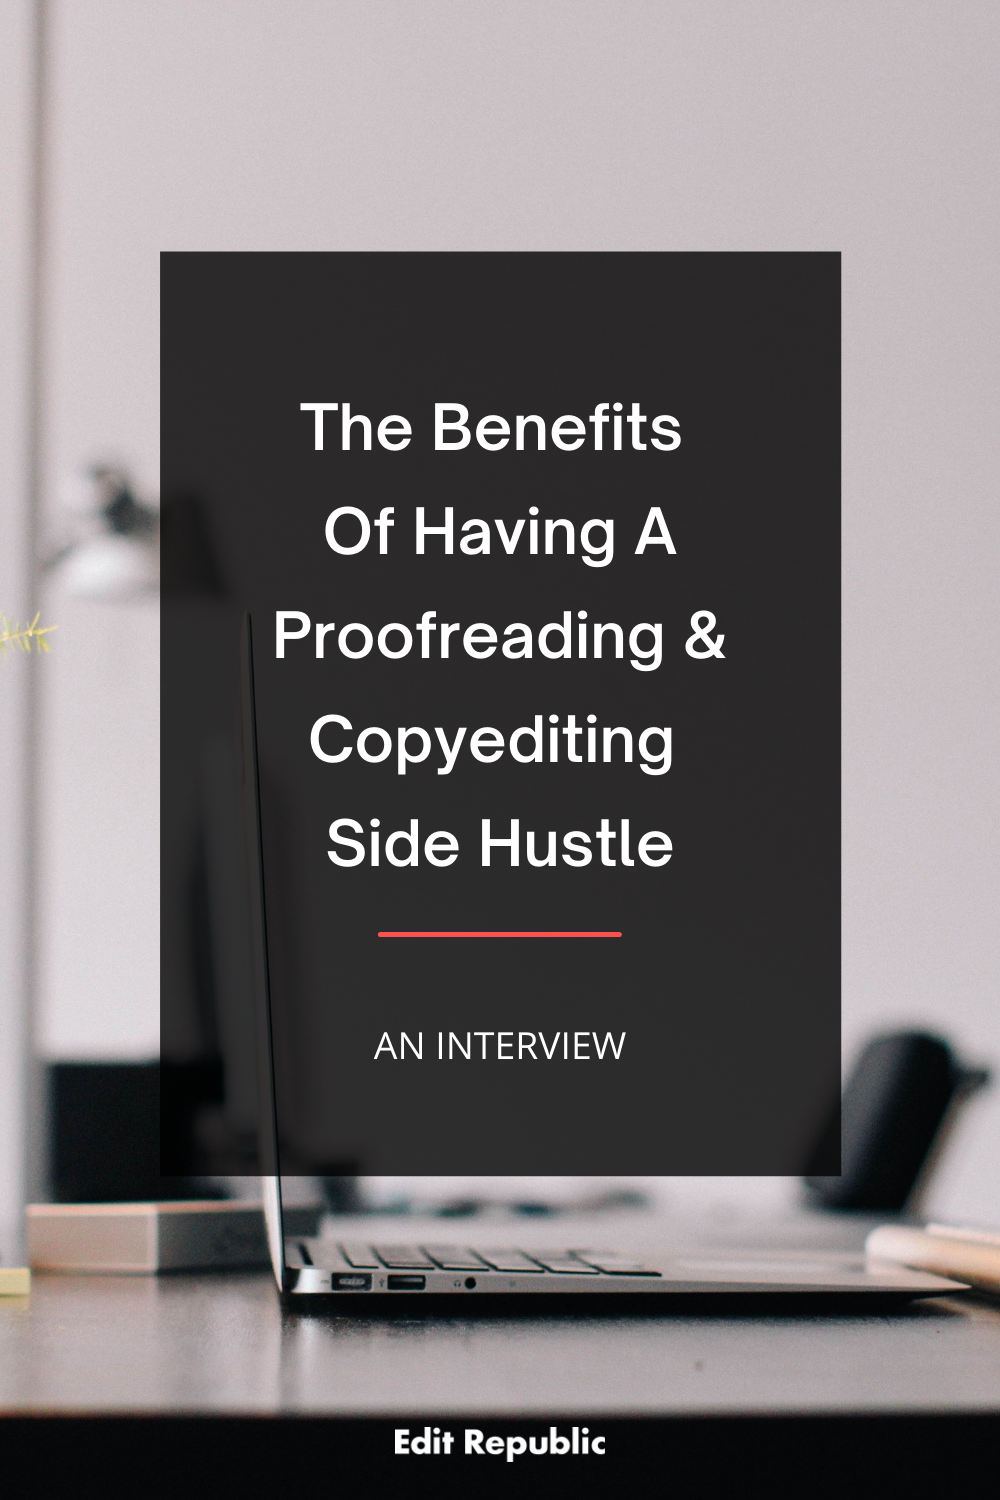 The Benefits Of Having A Proofreading And Copyediting Side Hustle